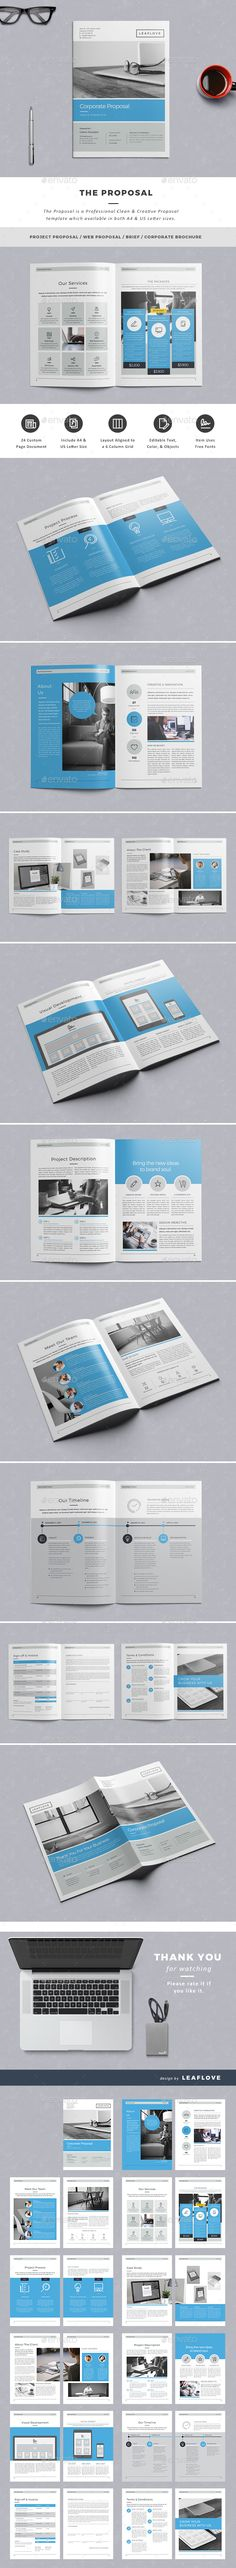 Proposal Proposals, Adobe indesign and Brochure template - booklet template free download